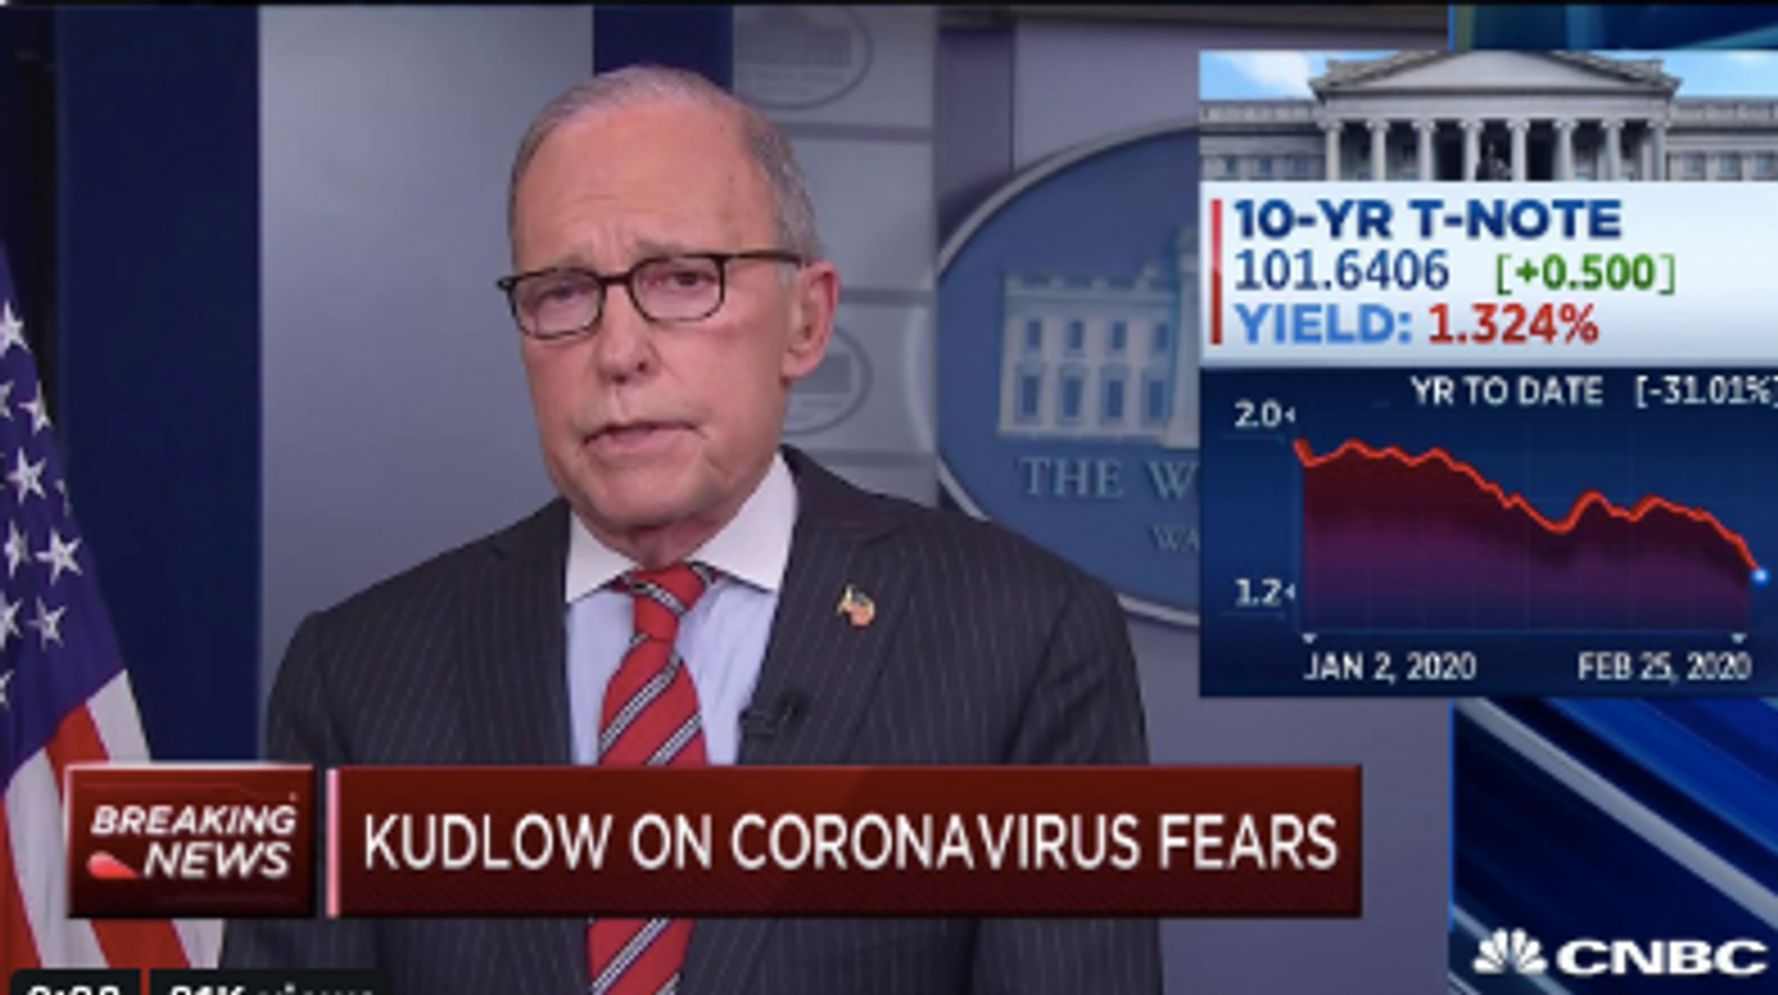 Westlake Legal Group 5e557218230000da080bf236 Larry Kudlow Claims Coronavirus 'Contained' In U.S. As CDC Warns Of Likely Spread